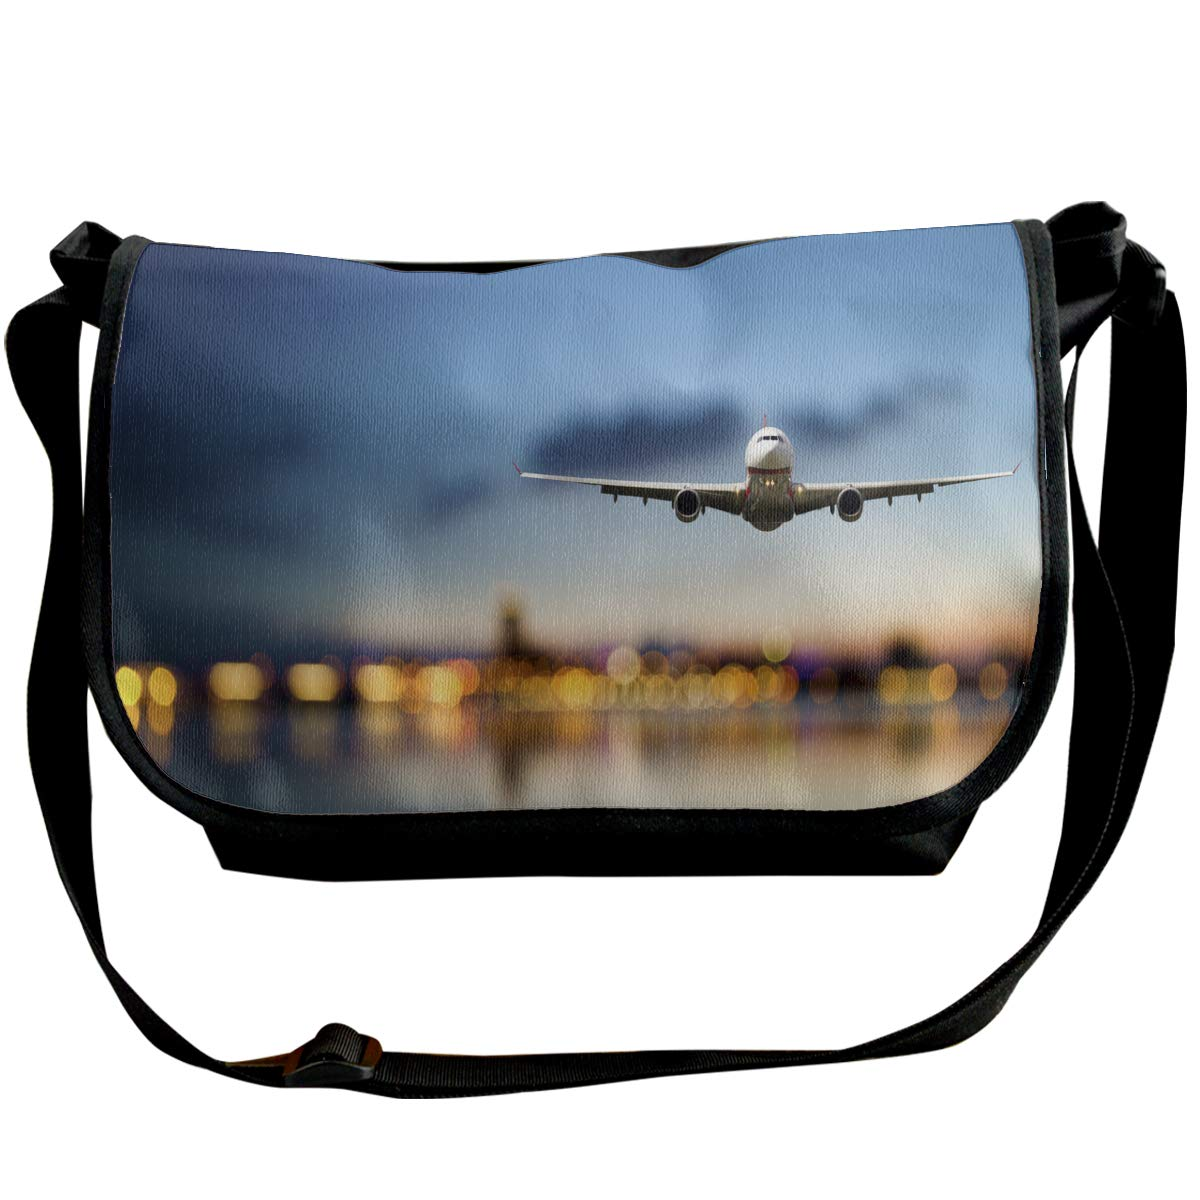 Futong Huaxia Airplane-Plane Travel Messenger Bags Handbag Shoulder Bag Crossbody Bag Unisex